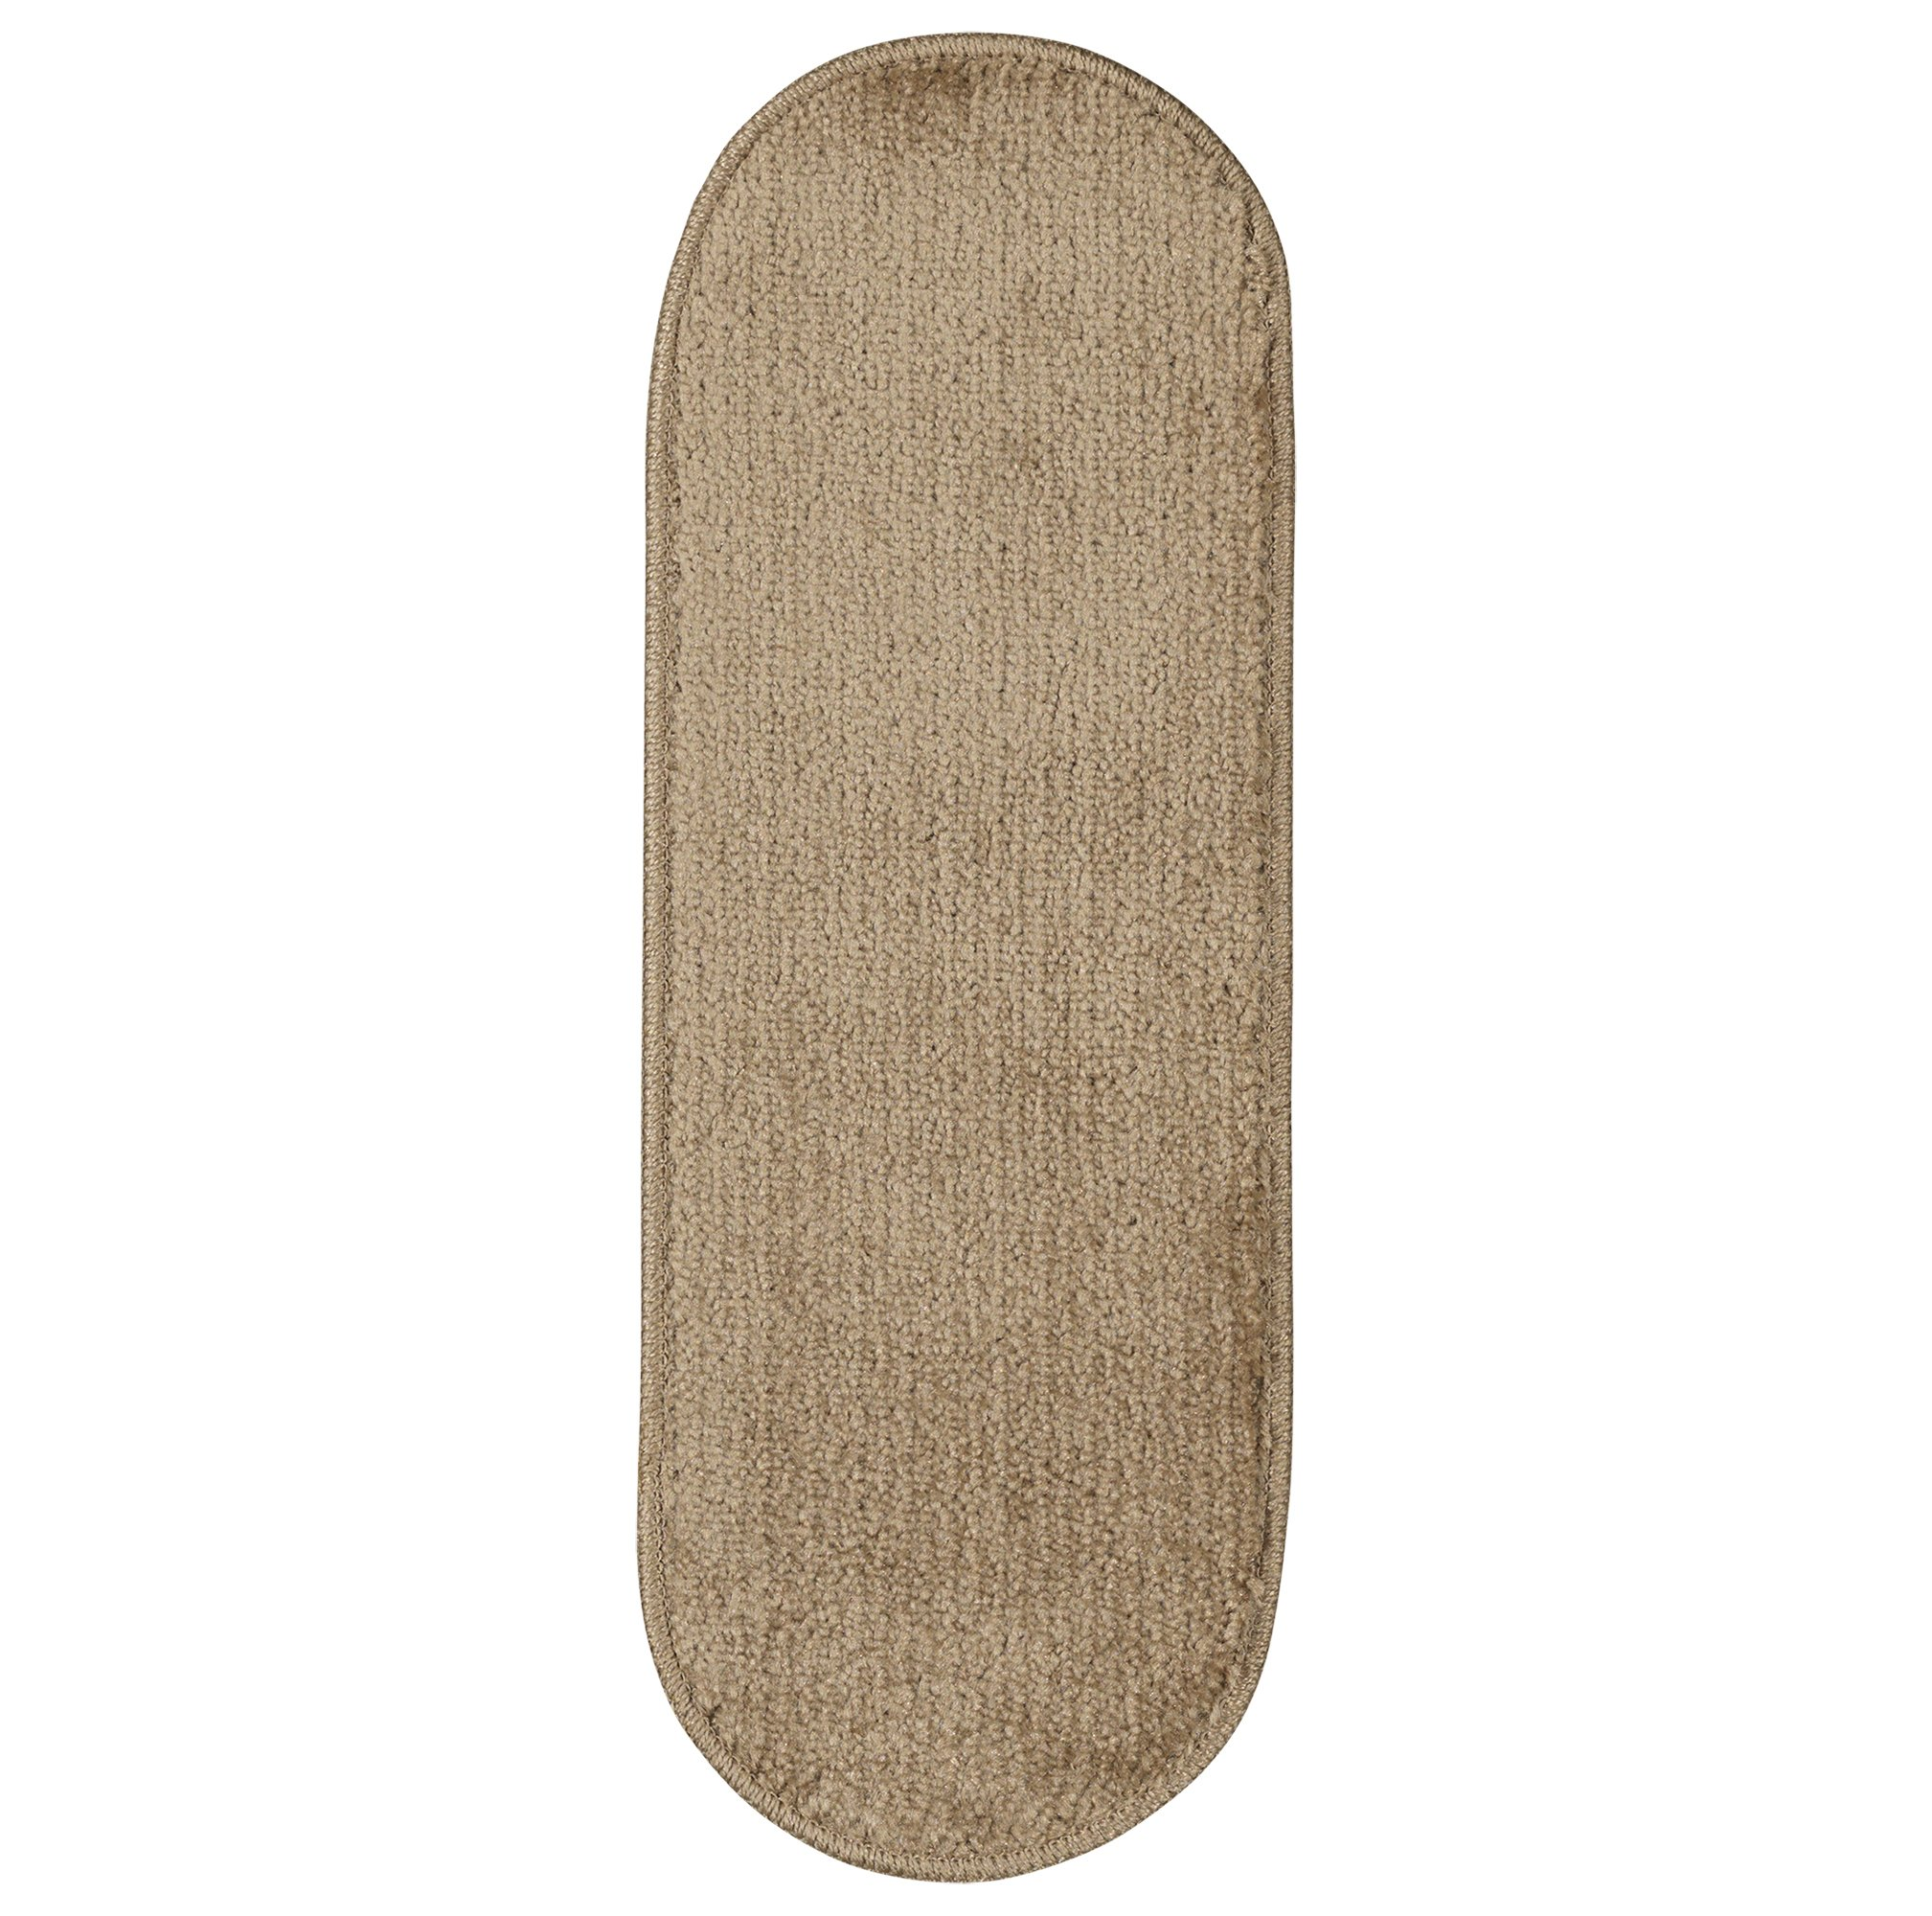 Ottomanson Softy Collection Stair Tread, 9'' X 26'' Oval, Beige, 14 Pack by Ottomanson (Image #6)